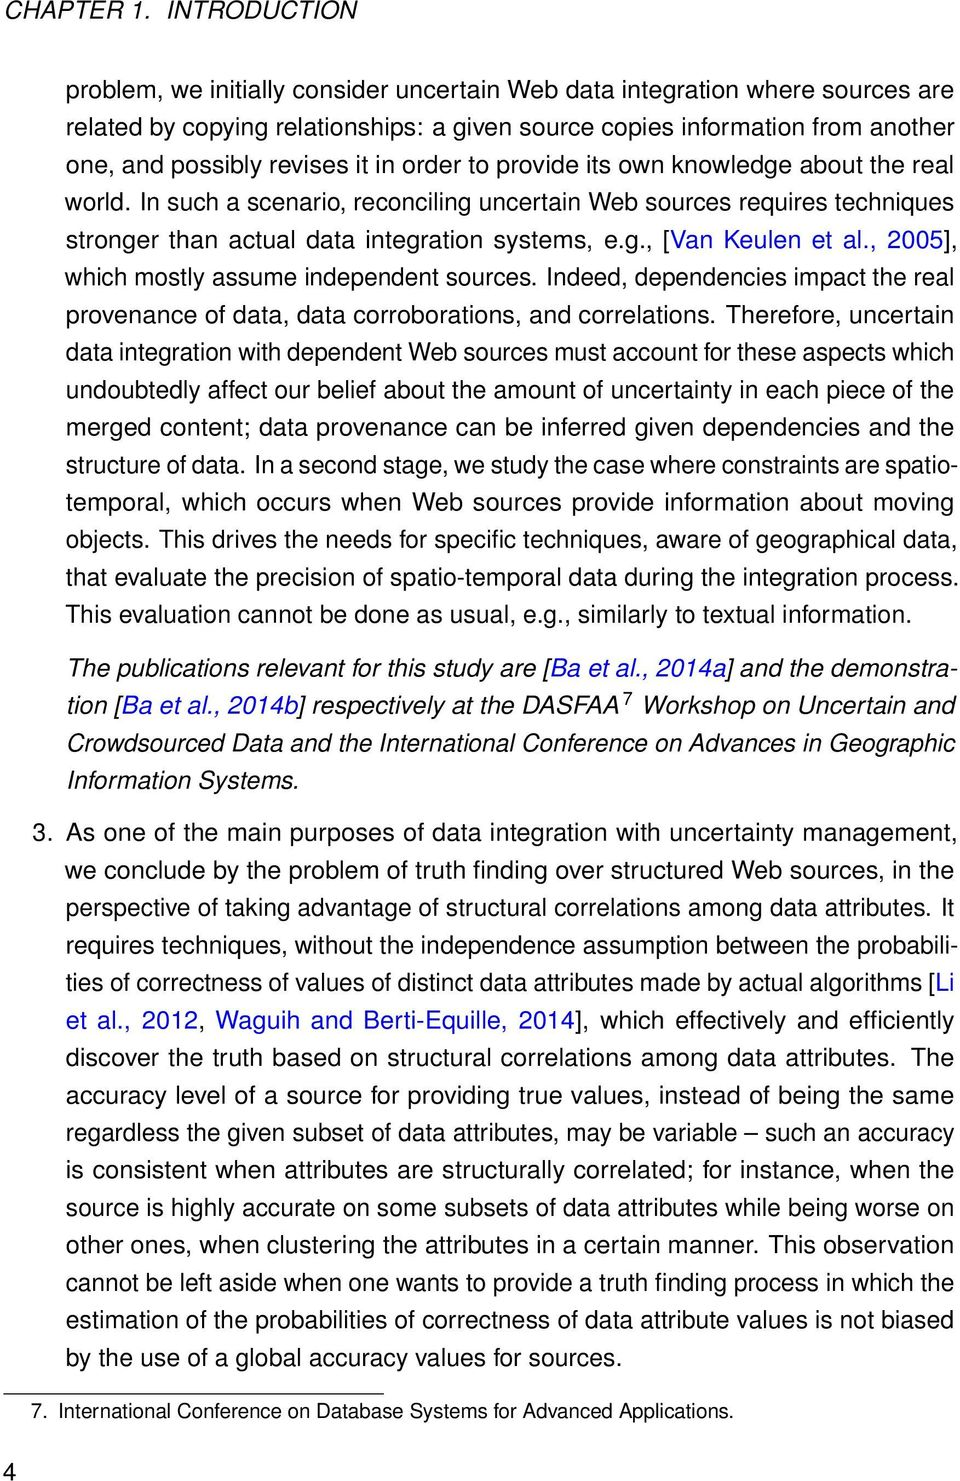 it in order to provide its own knowledge about the real world. In such a scenario, reconciling uncertain Web sources requires techniques stronger than actual data integration systems, e.g., [Van Keulen et al.